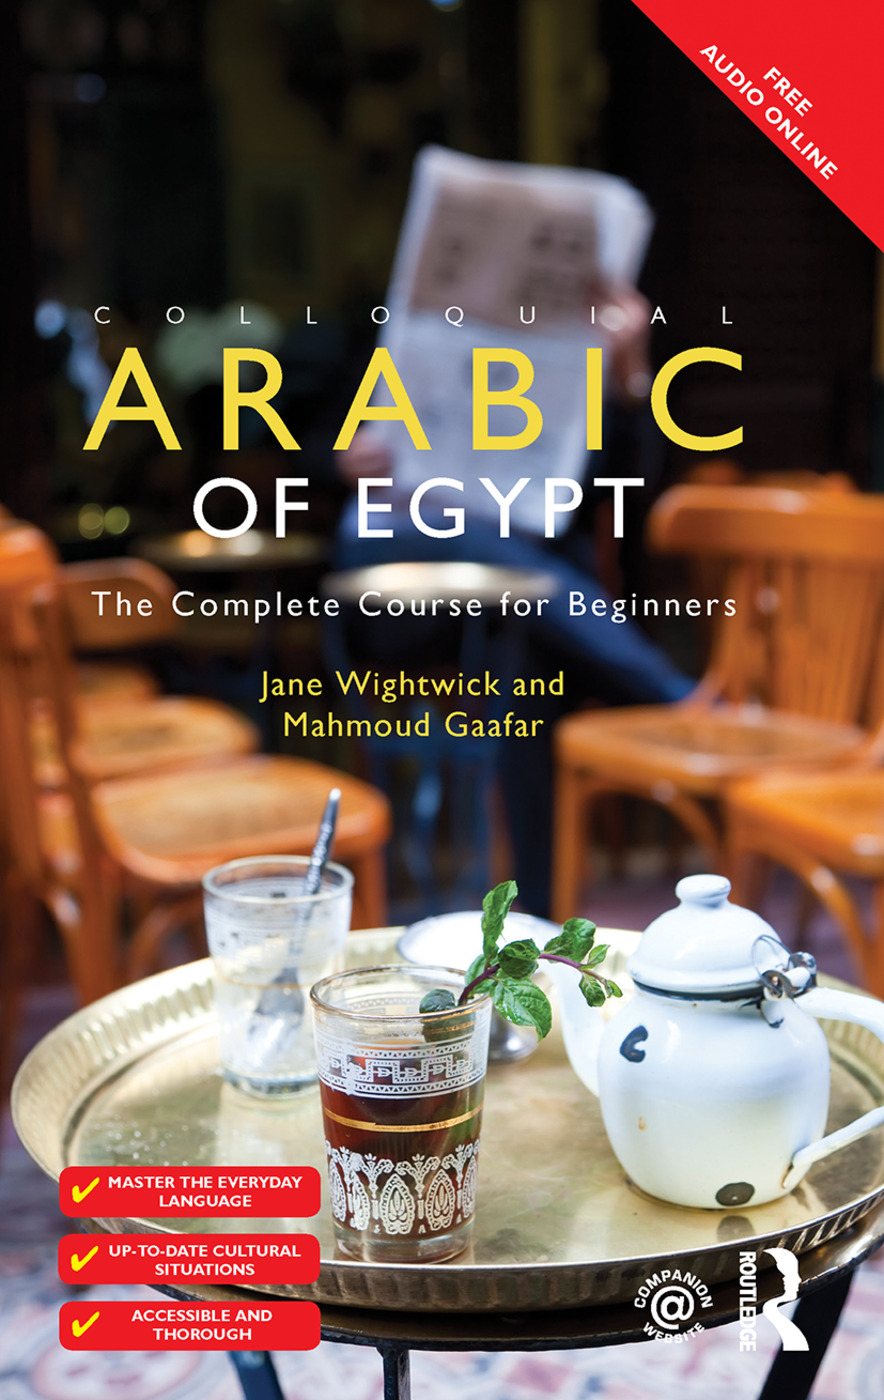 Colloquial Arabic of Egypt | The Complete Course for Beginners